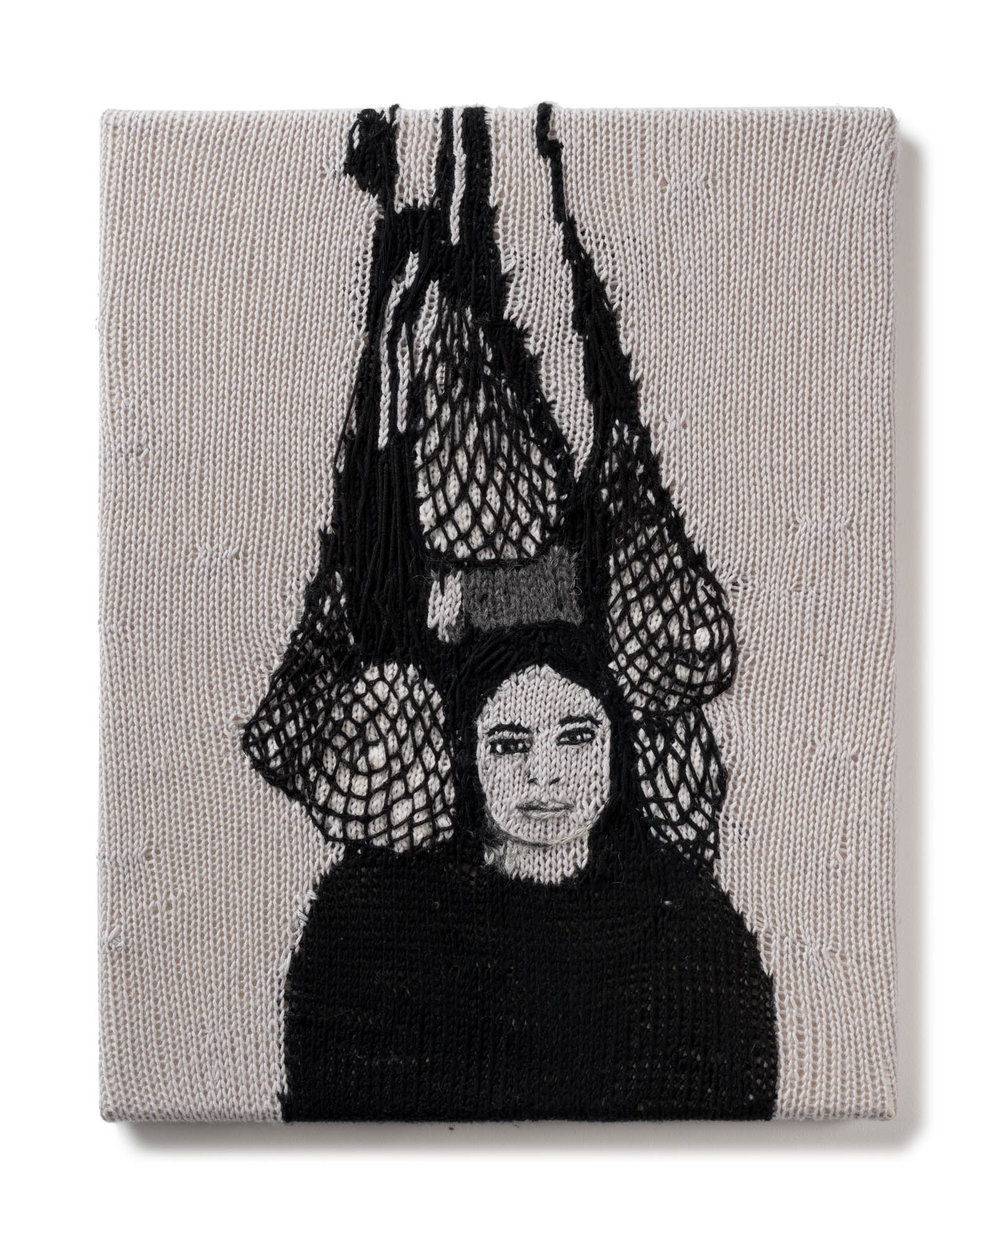 Kate Just, Feminist Fan #28 (Eva Hesse photographed by Hermann Landshoff), 2016